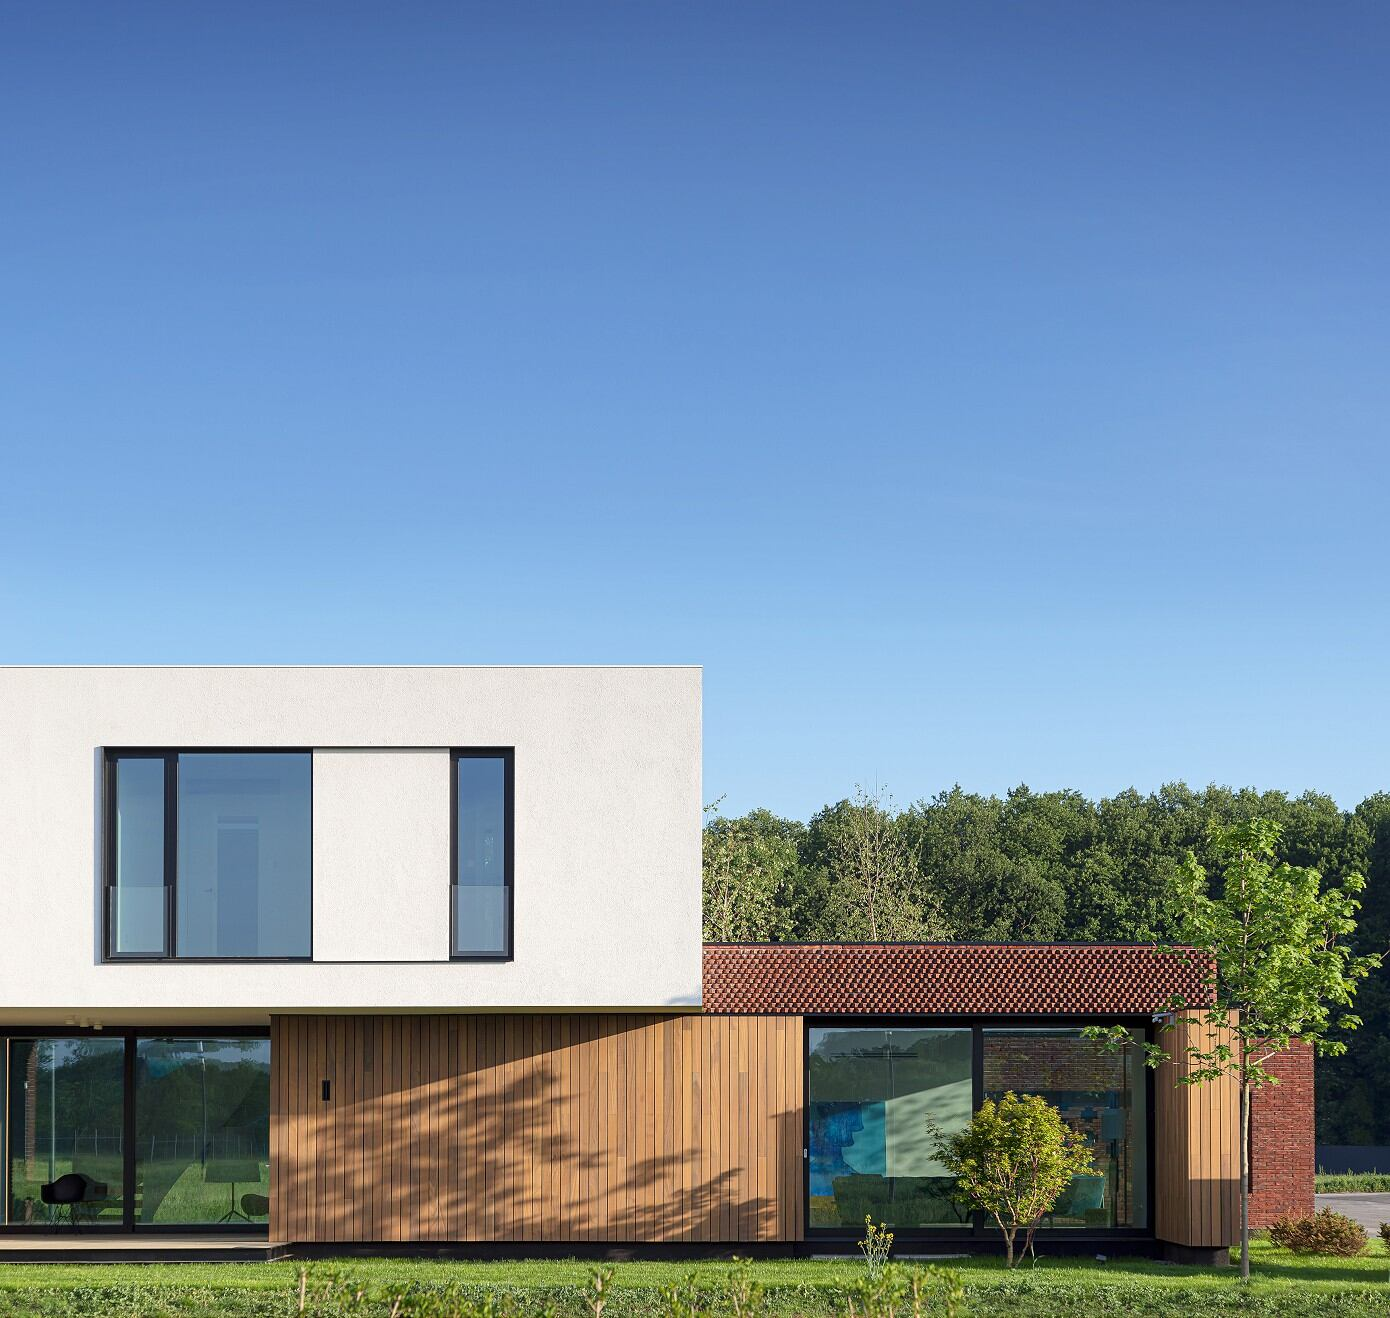 House 1408 by STUDIO 1408